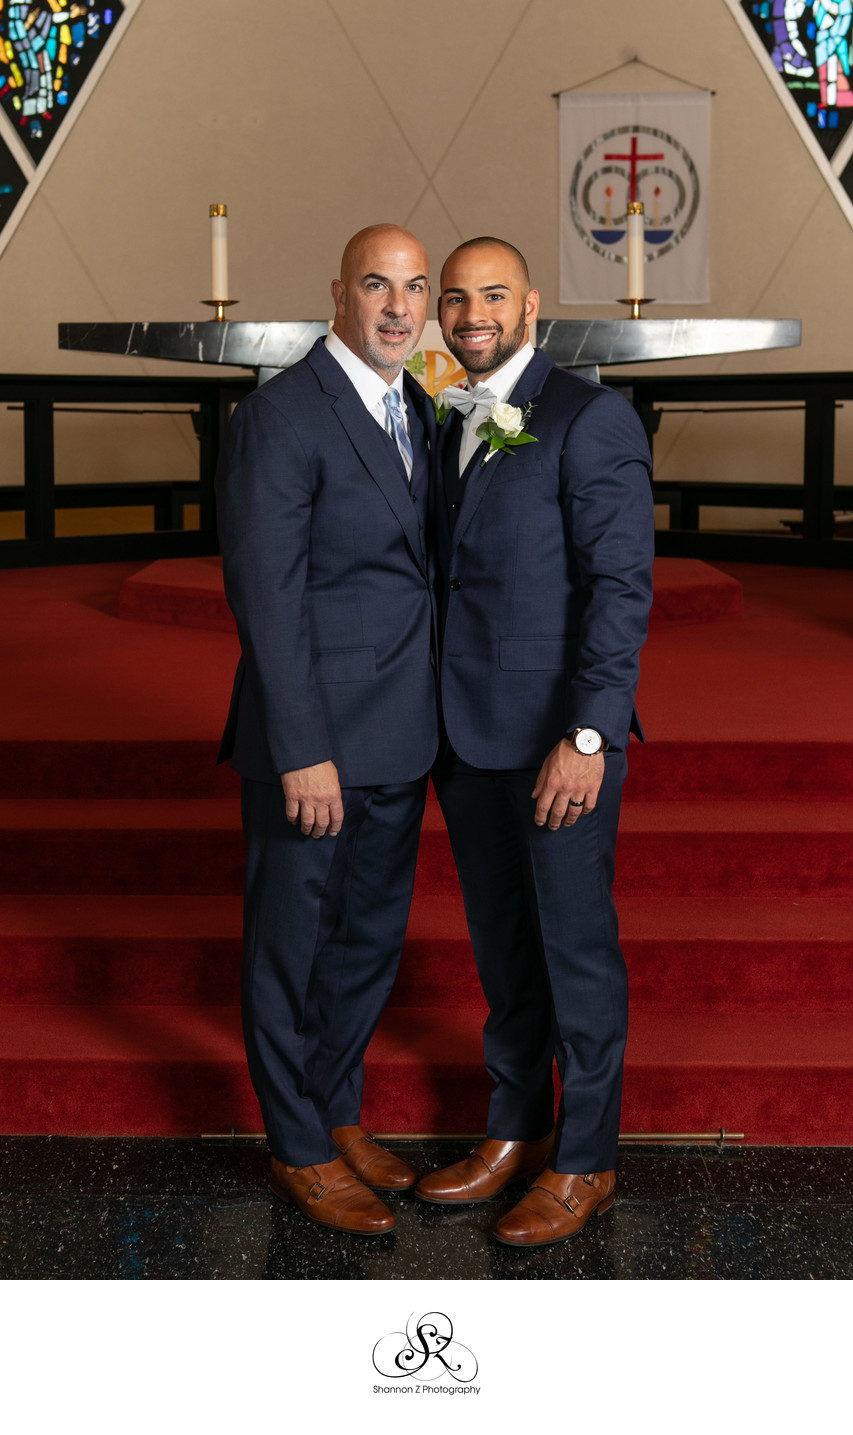 Father and Son: Wedding Portraits